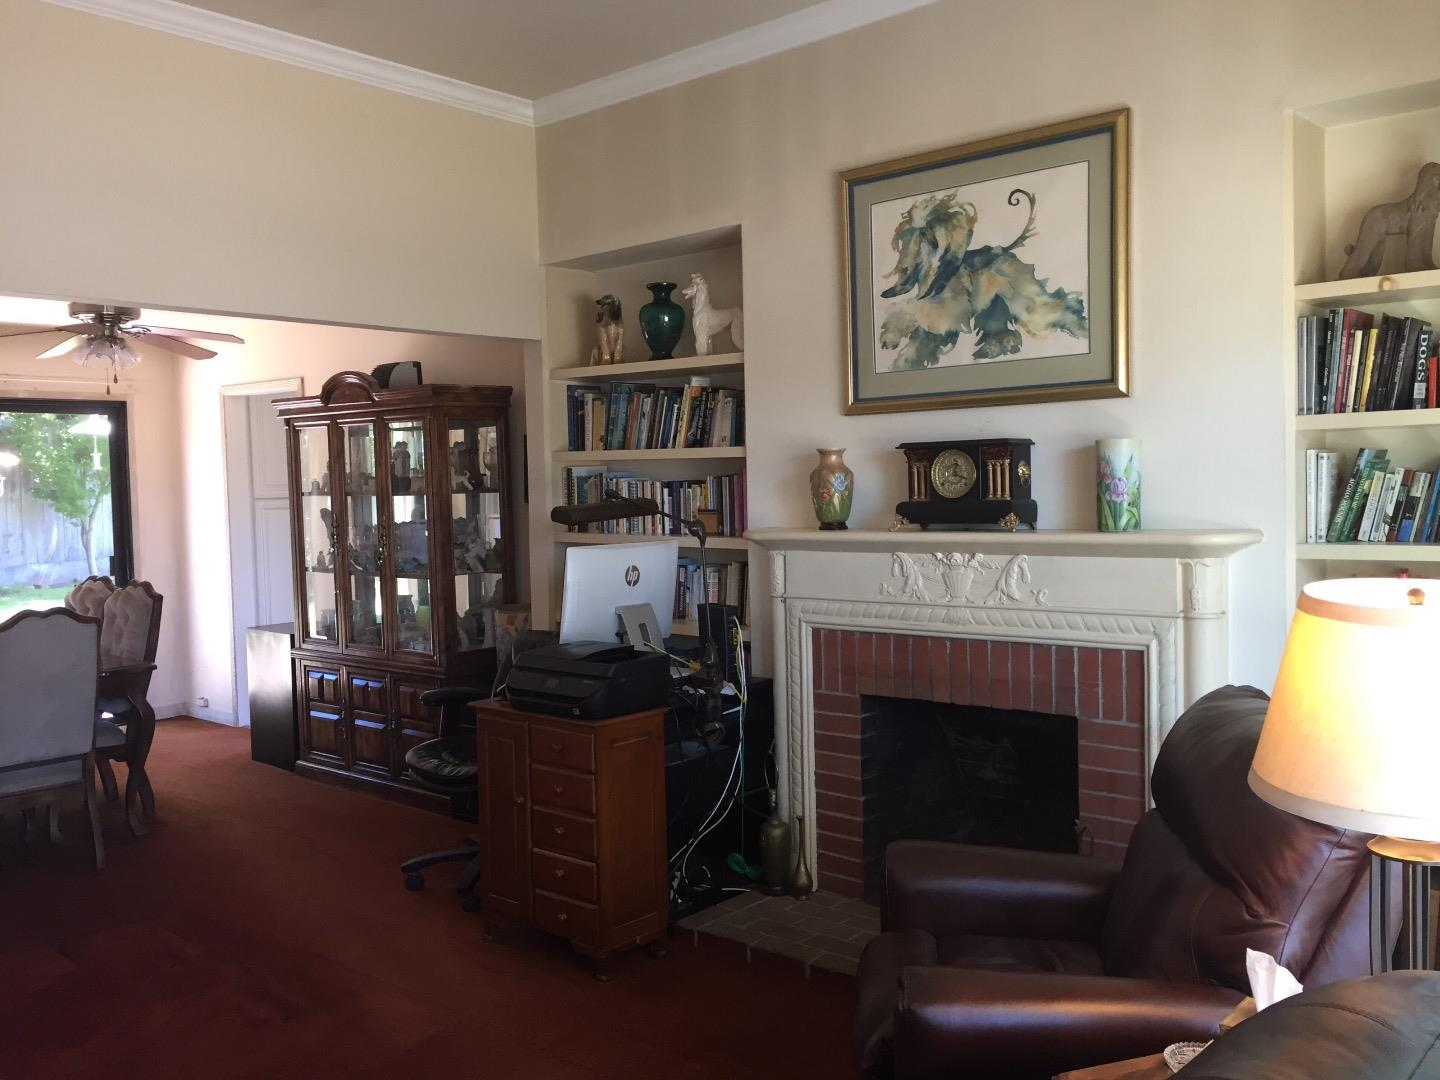 Additional photo for property listing at 509 Ocean View Avenue  San Mateo, Kalifornien 94401 Vereinigte Staaten